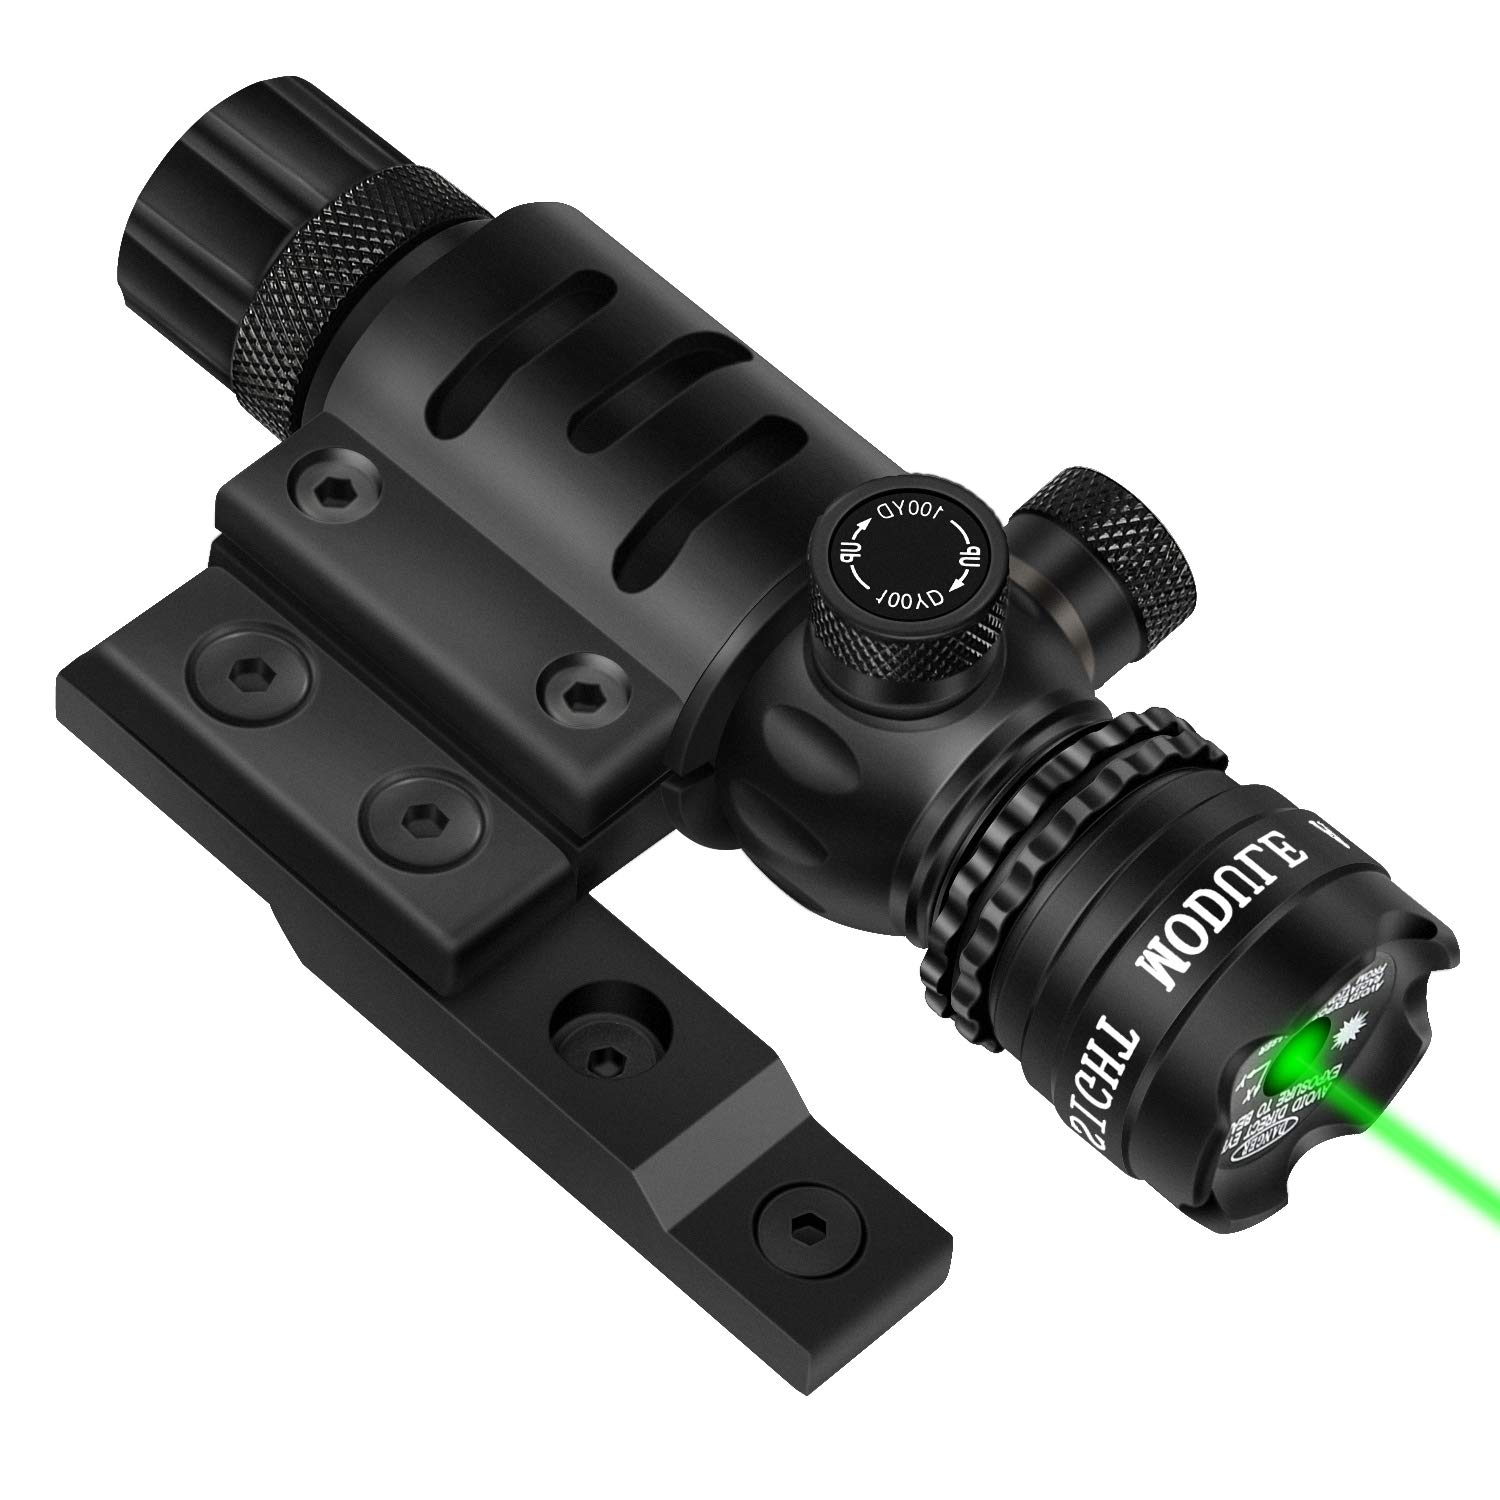 EZshoot Mlok Green Laser Sight Green Dot 532nm Rifle Scope with M-Lok Rail Mount for Outdoor Hunting Shooting - Include Barrel Mount Cable Switch by EZshoot